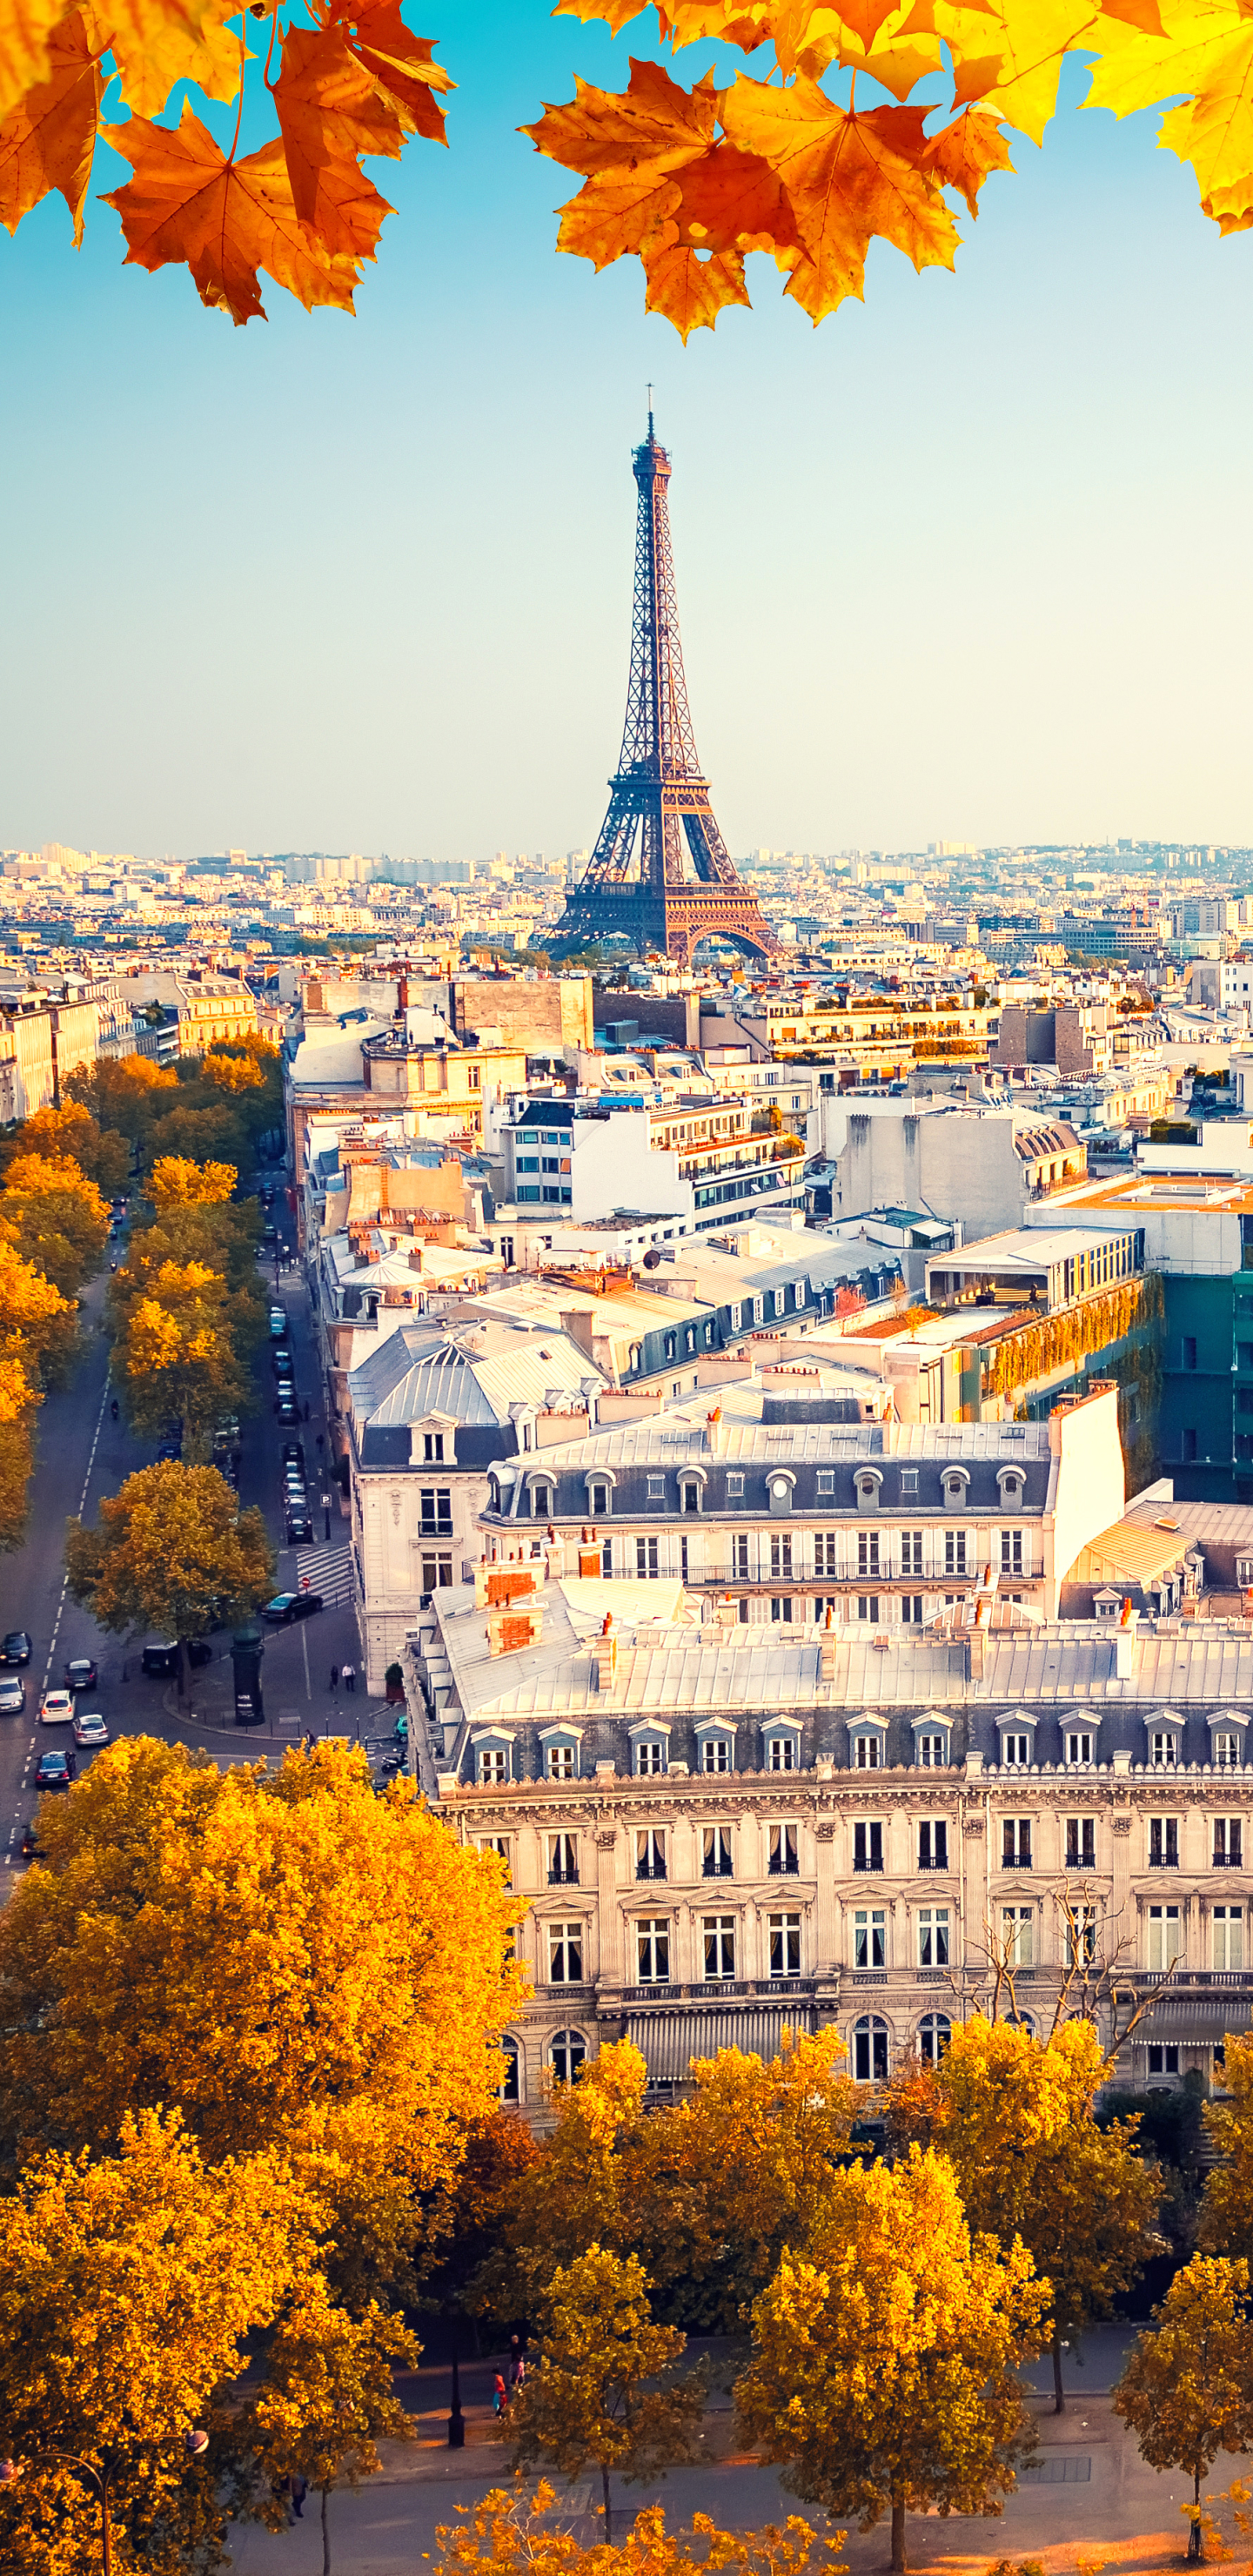 Man Made Paris 1440x2960 Wallpaper Id 733988 Mobile Abyss